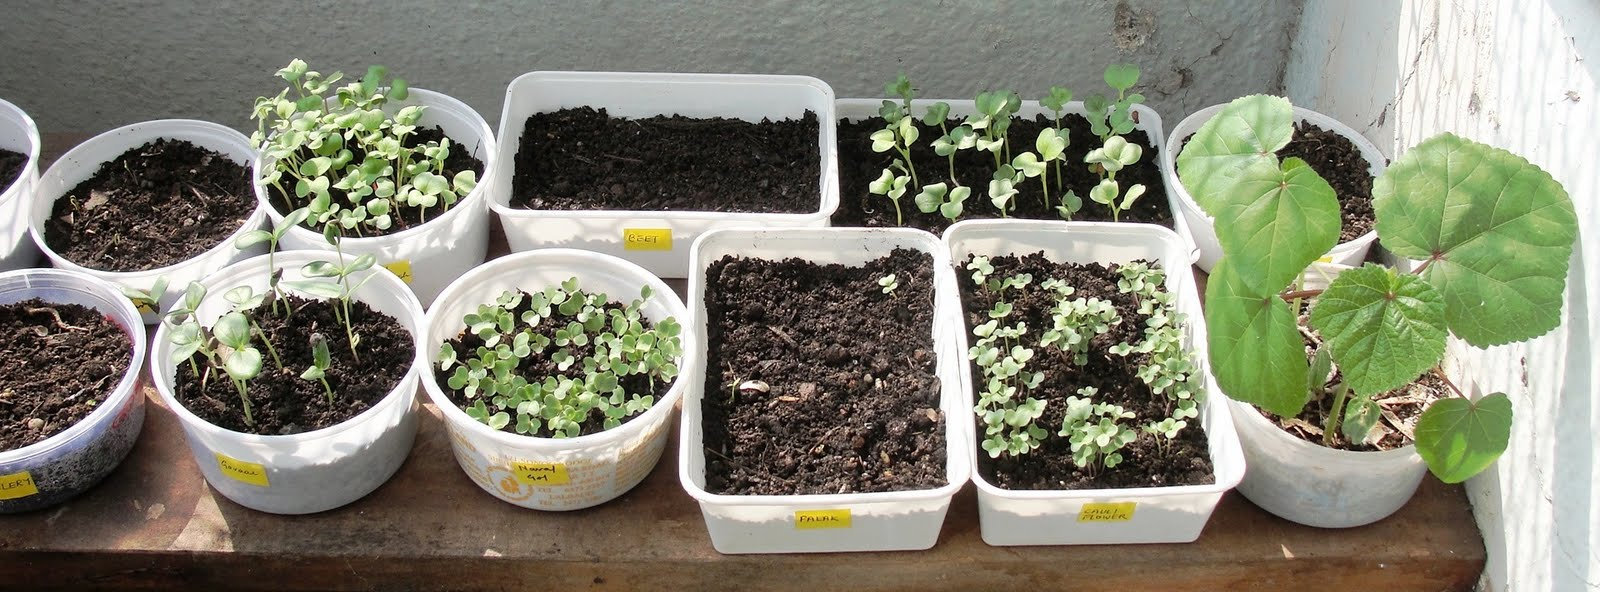 Urban leaves india 5 seeds to sow from your kitchen cupboard for Terrace vegetable garden india